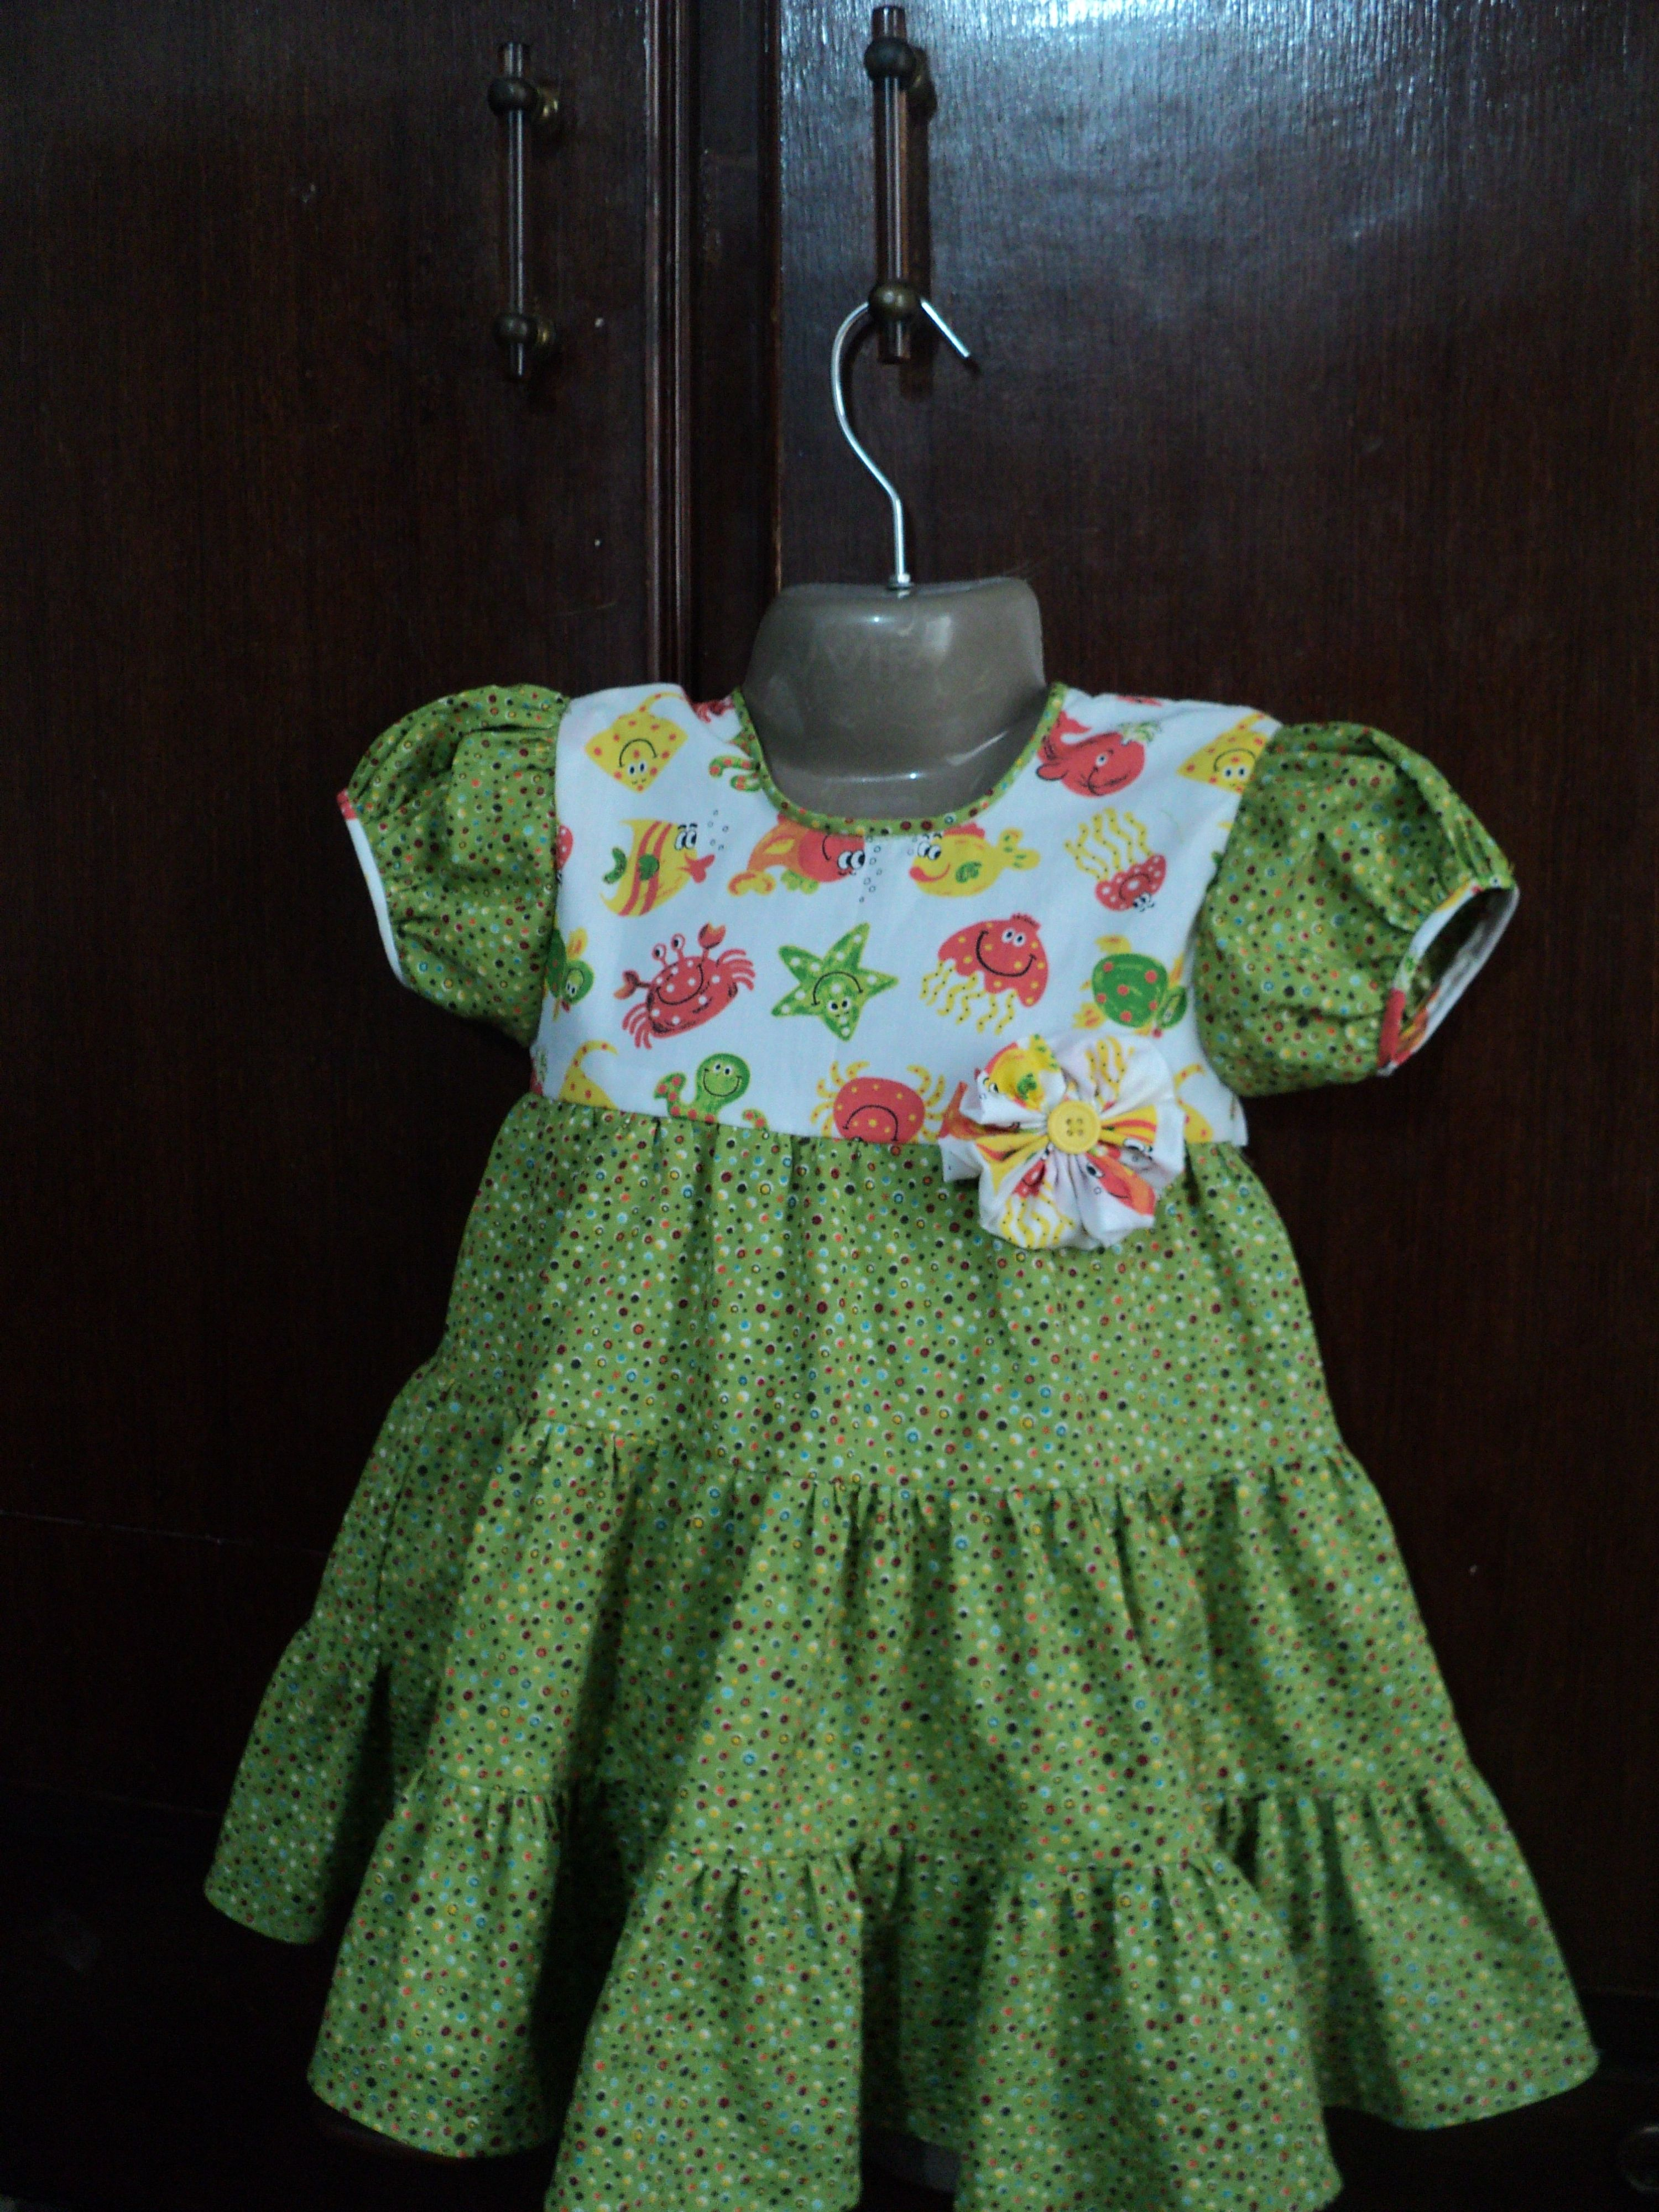 fdf15ddedd3f Baby dresses is a Online home based small business..based in Karachi  Pakistan but